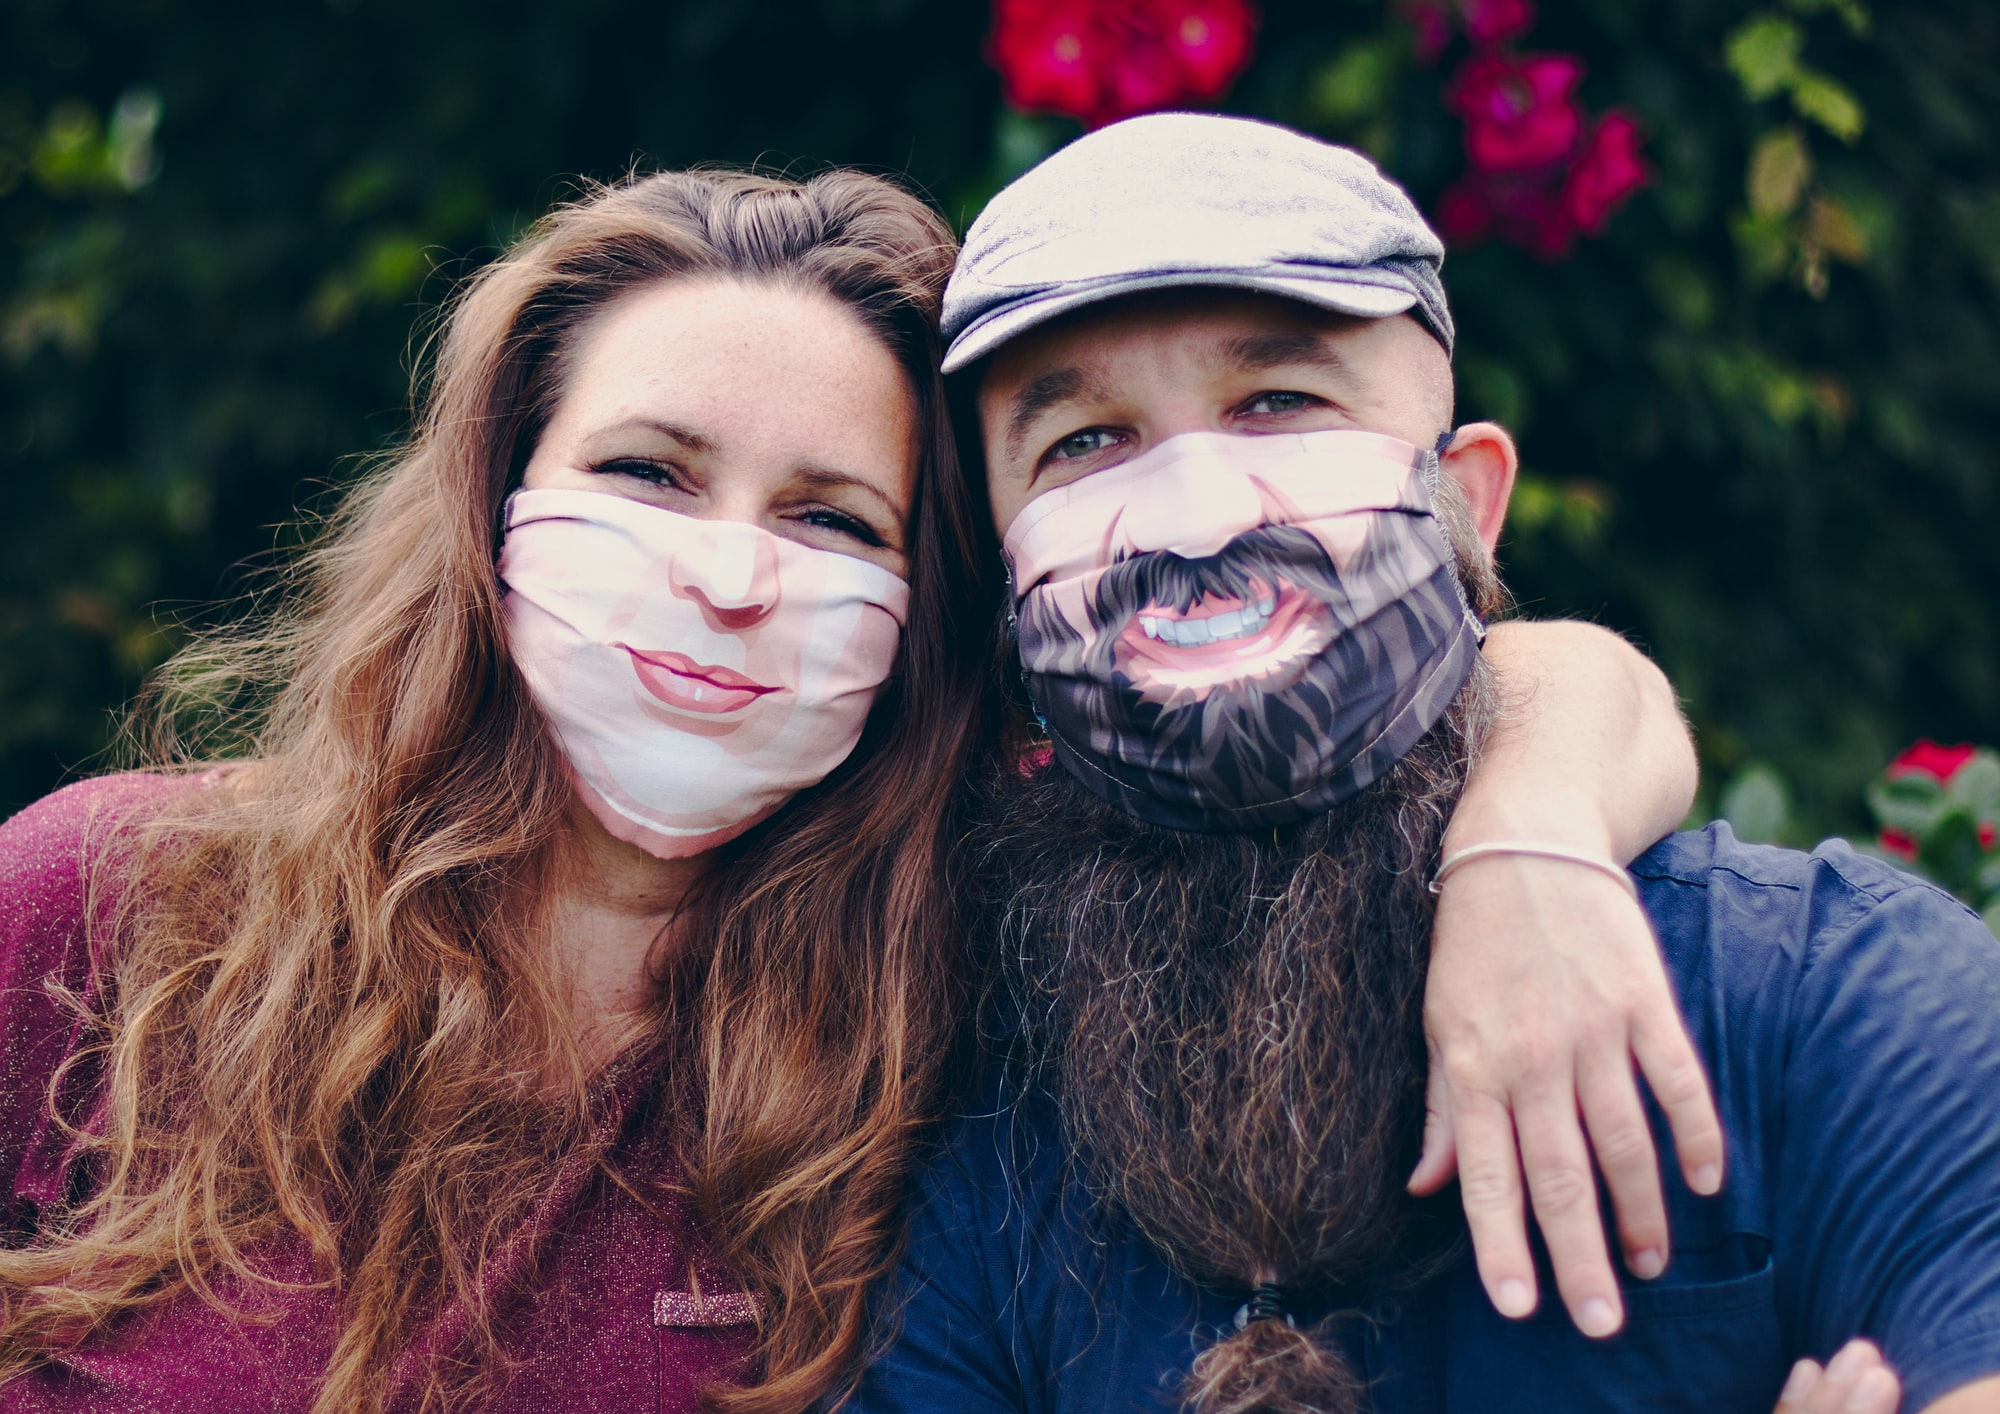 In a world where face masks are becoming the new normal. We want to change that and have our your face printed on the mask. Check out mycomfortmask.com for more info